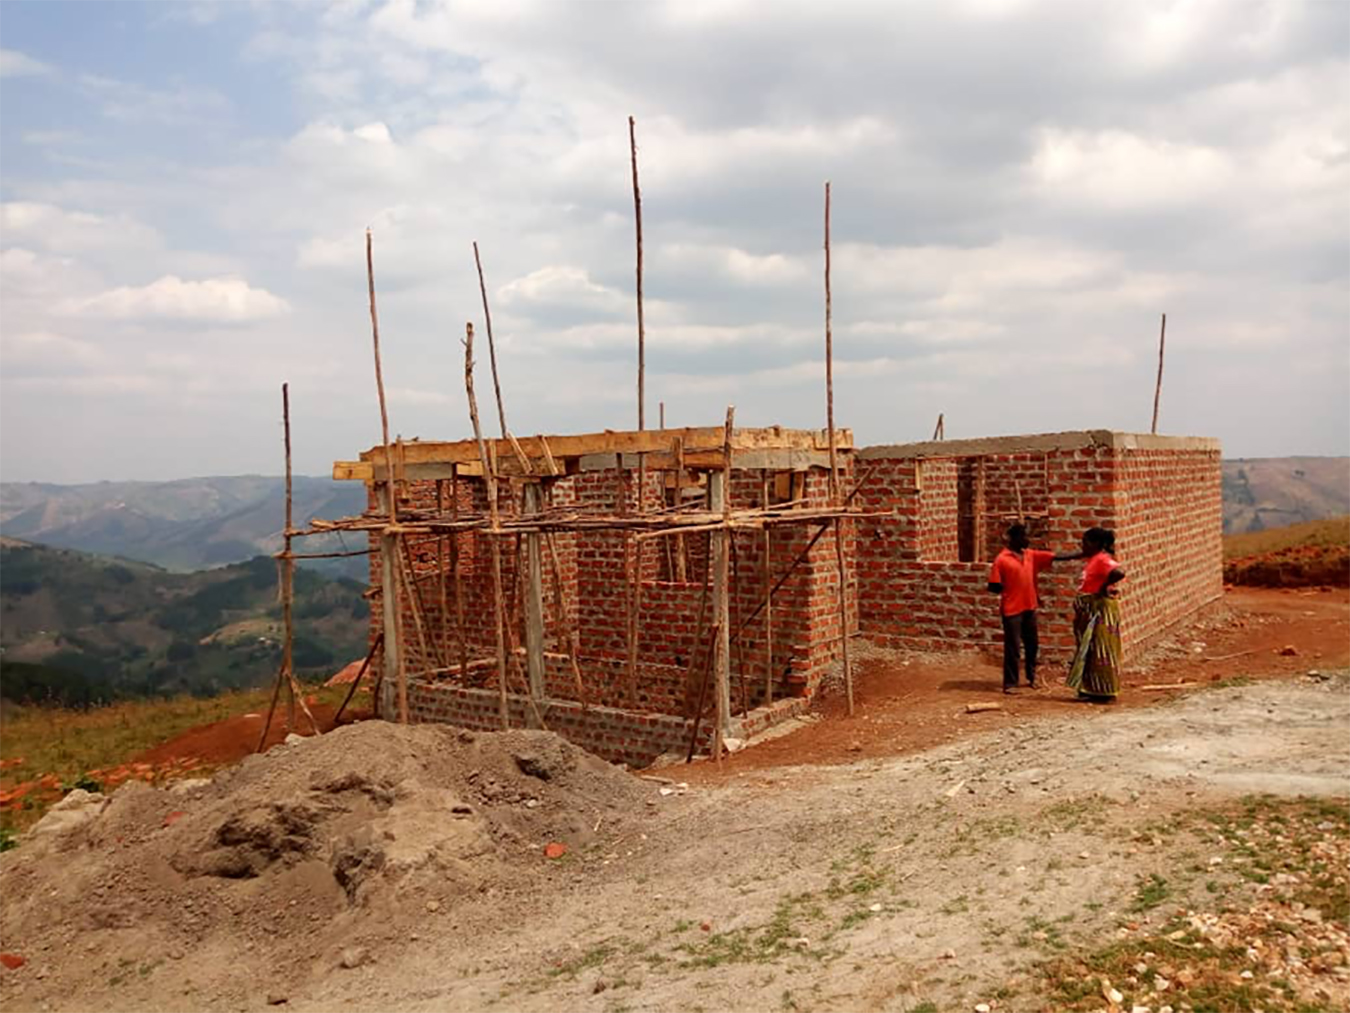 A small, half-built, brick house on the outskirts of Mbarara. This modest construction project was already two years in the making when this photo was taken. Photo by Twesigye Pius.